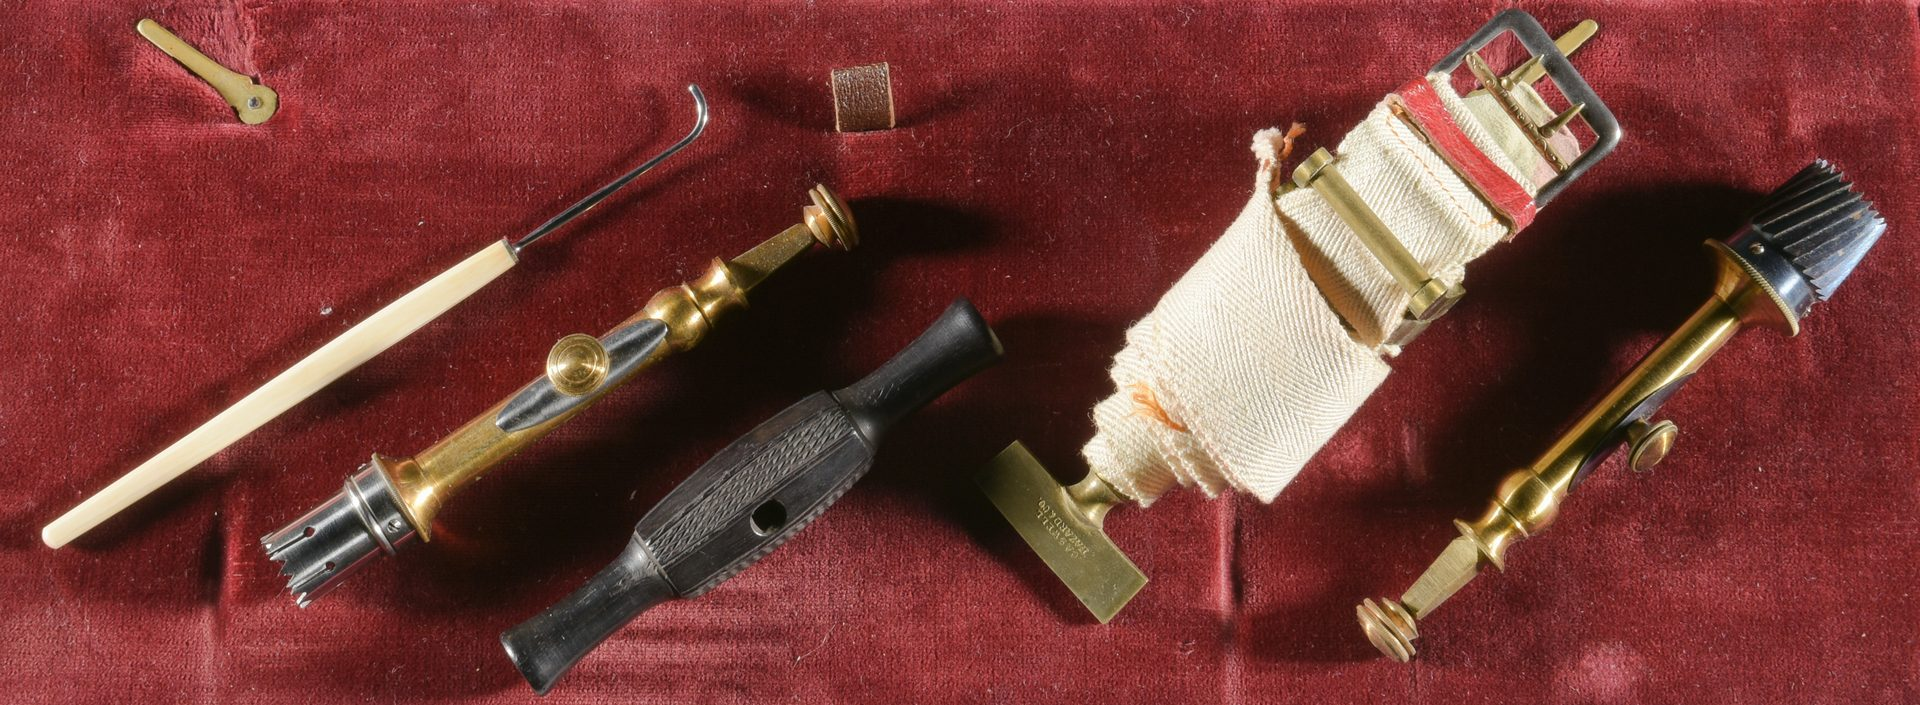 Lot 527: Cased Medical Instruments, 19th c.